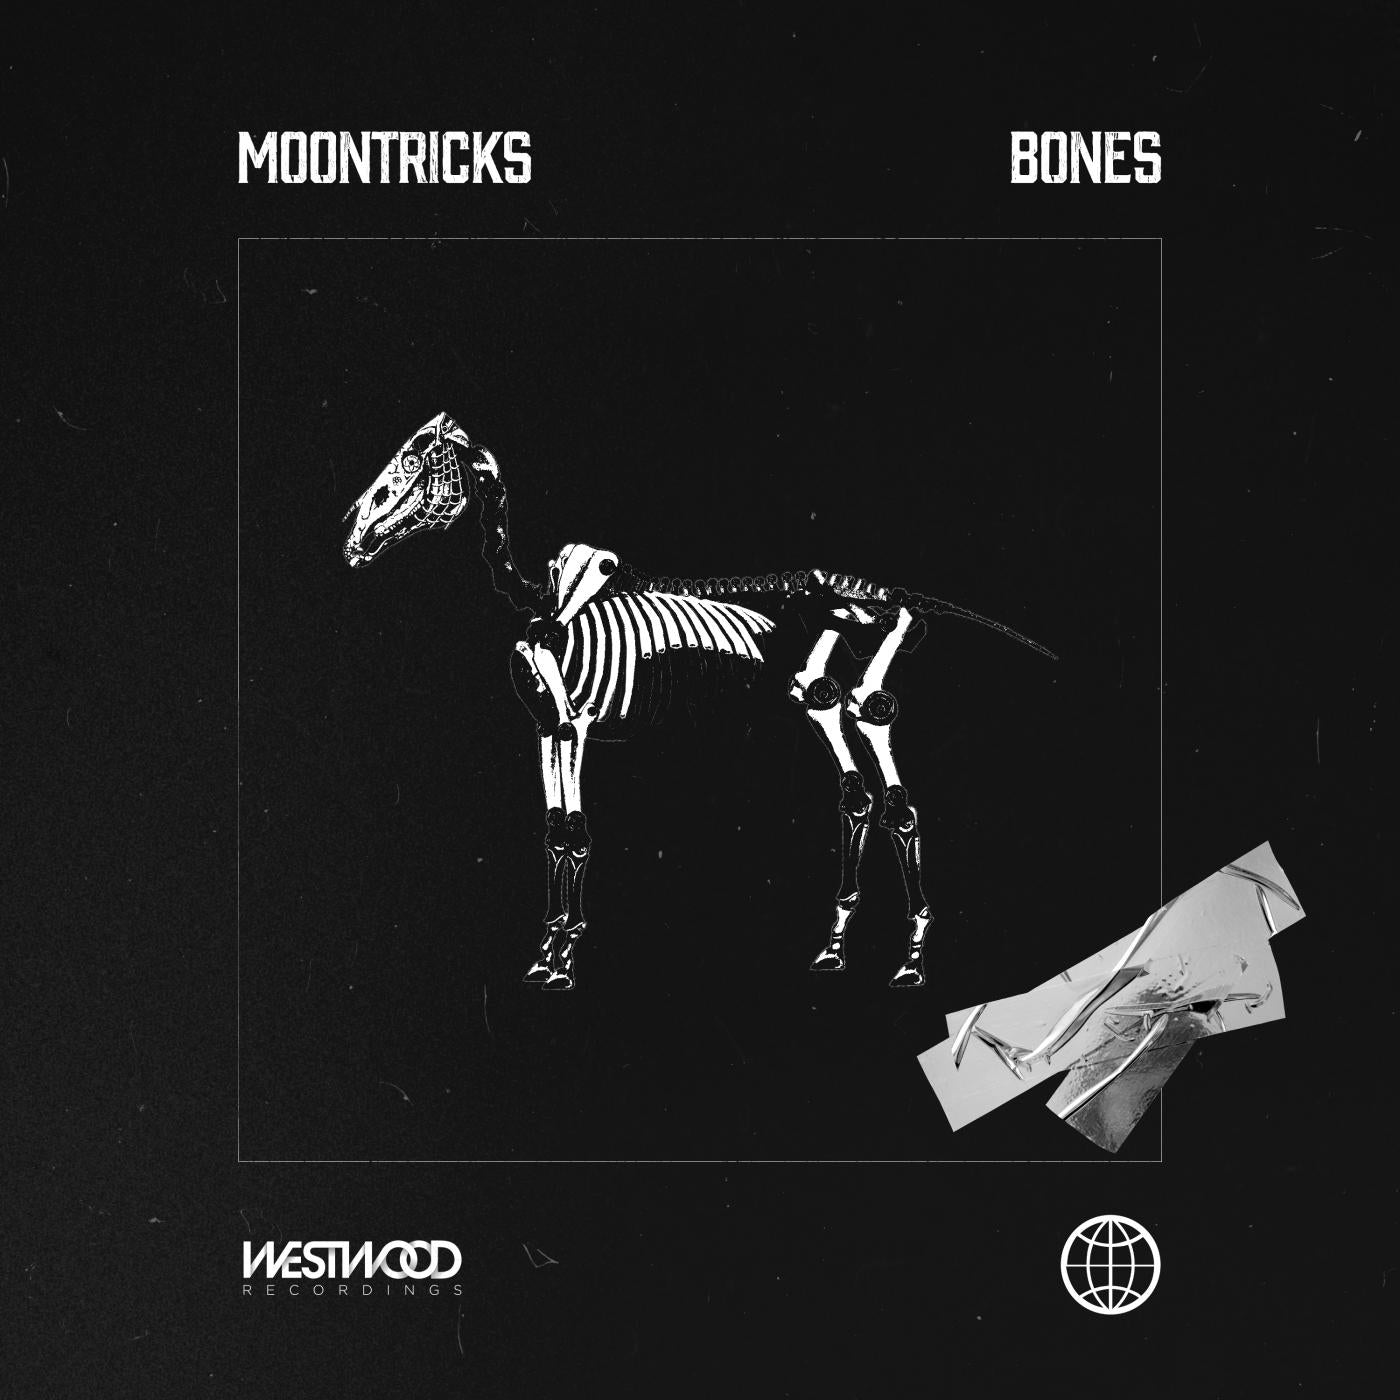 Moontricks - Bones